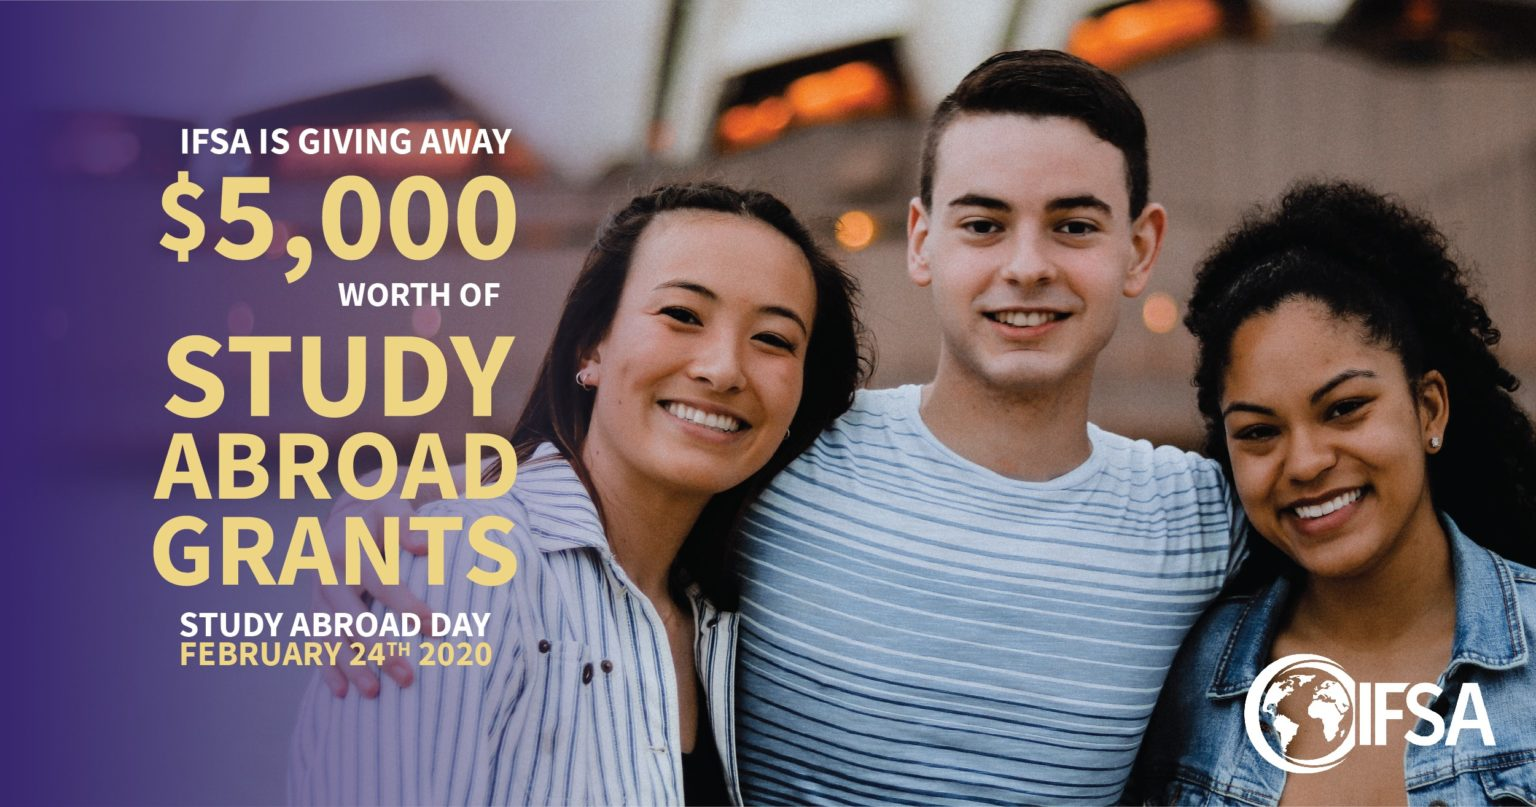 IFSA is Giving Away $5,000 for Study Abroad Day!